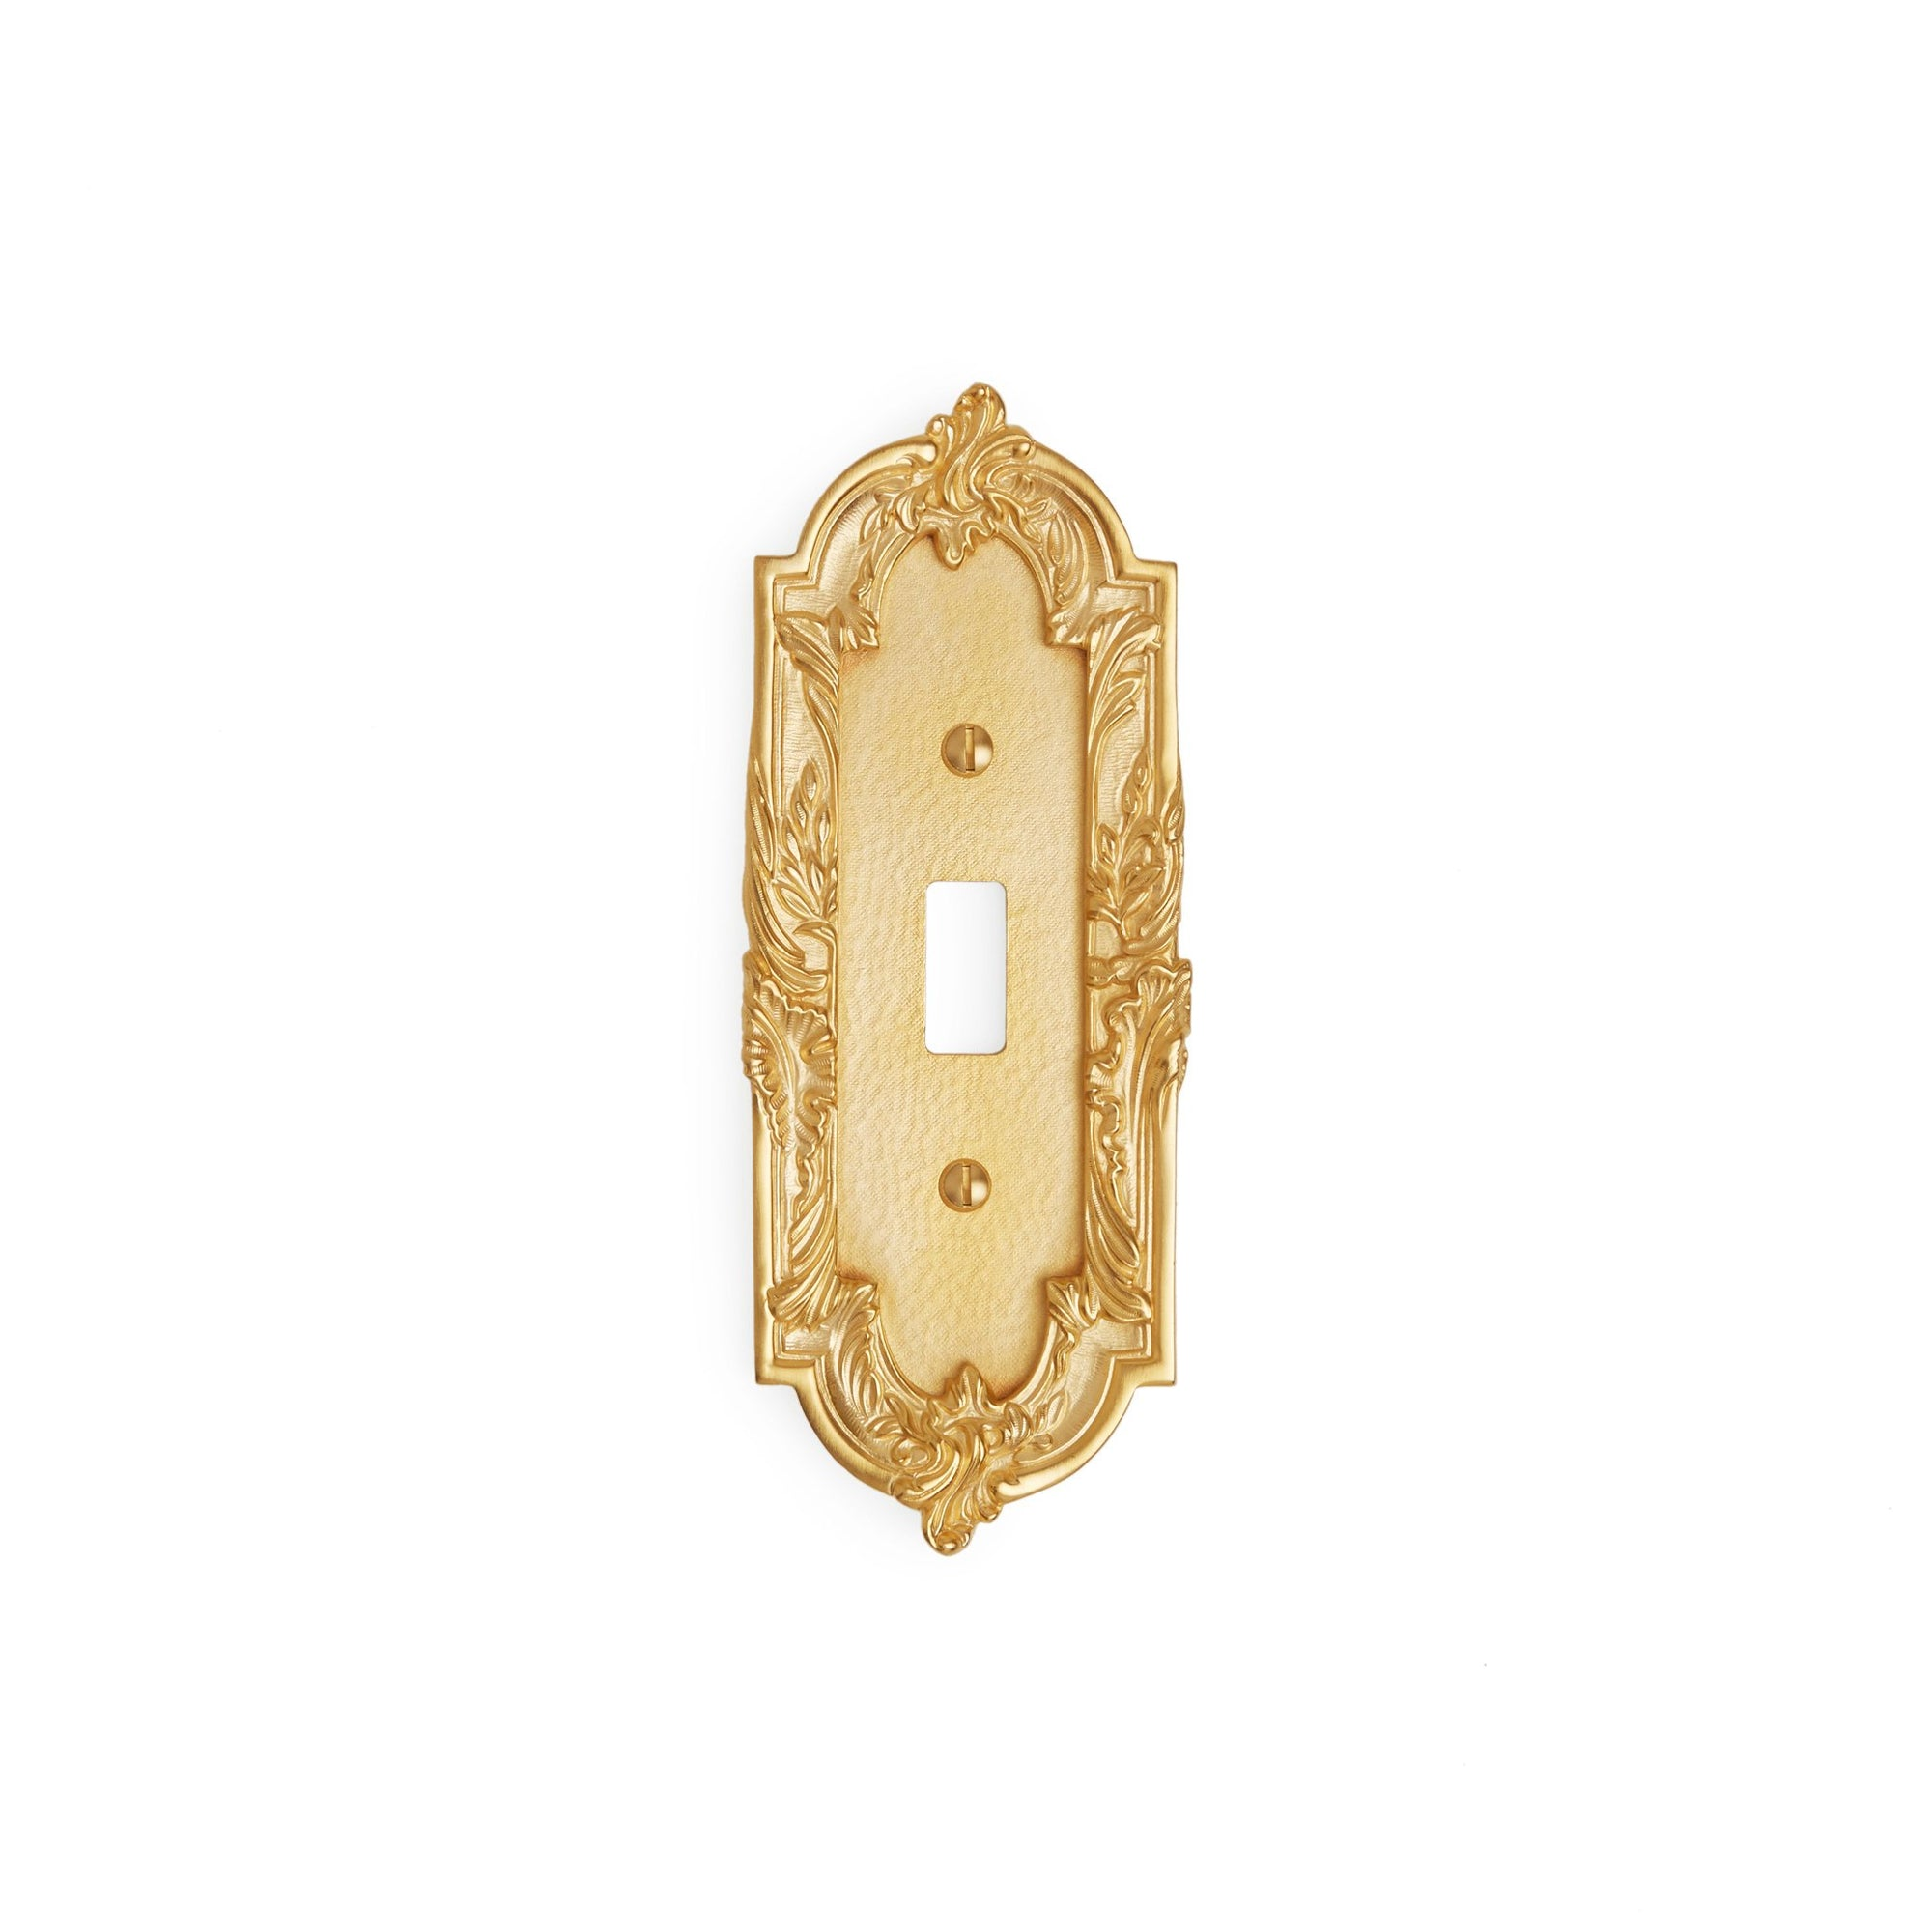 0463-SWT-GP Sherle Wagner International Rococo Single Switch Plate in Gold Plate metal finish